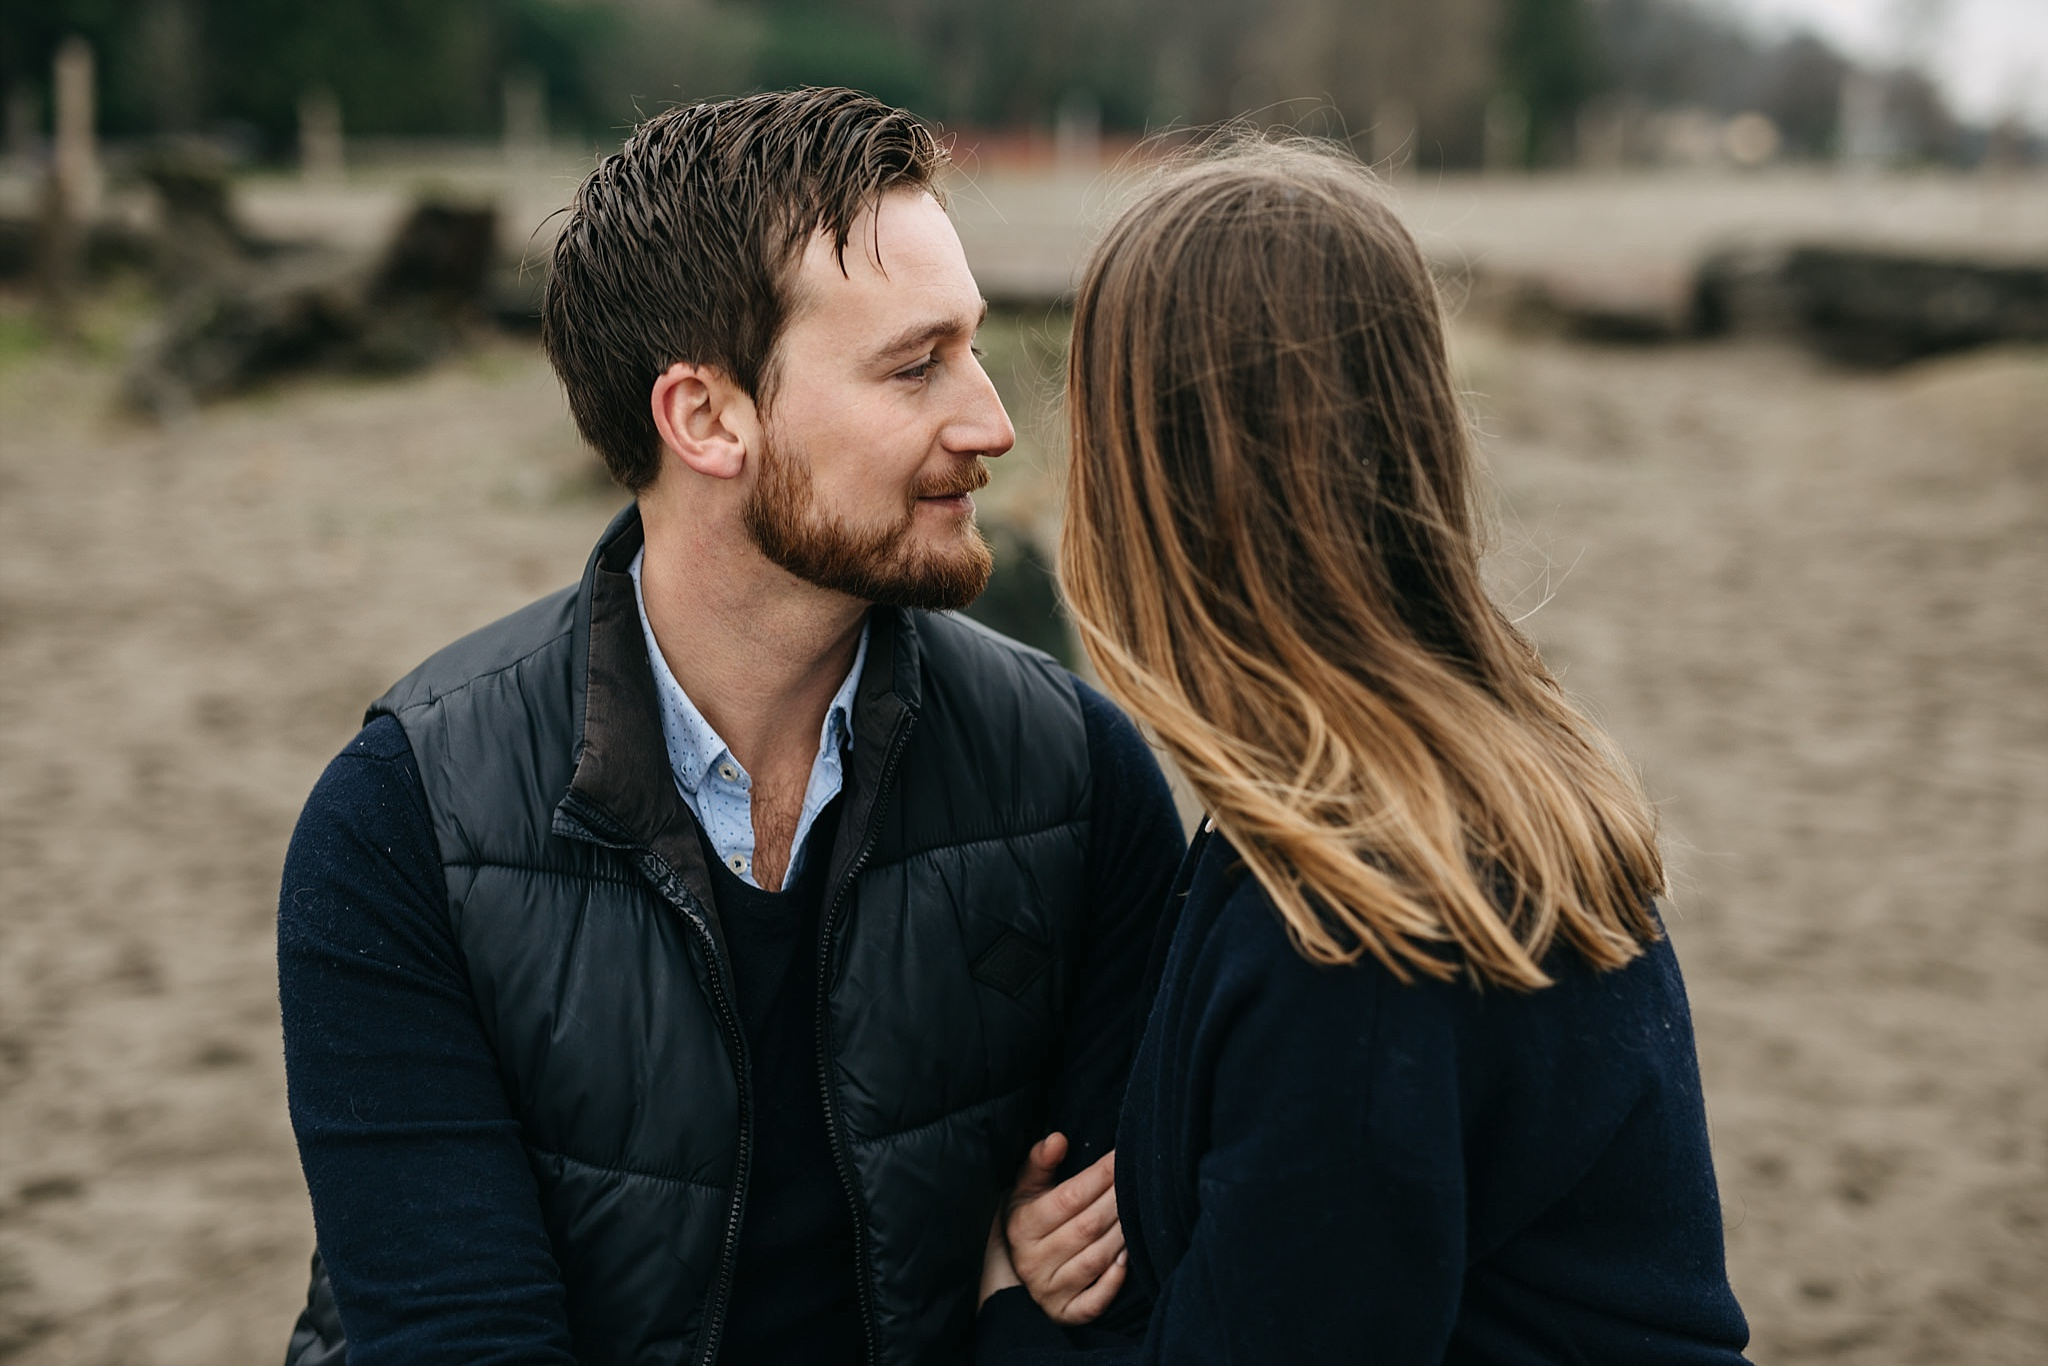 candid intimate moment between couple engagement spanish banks beach